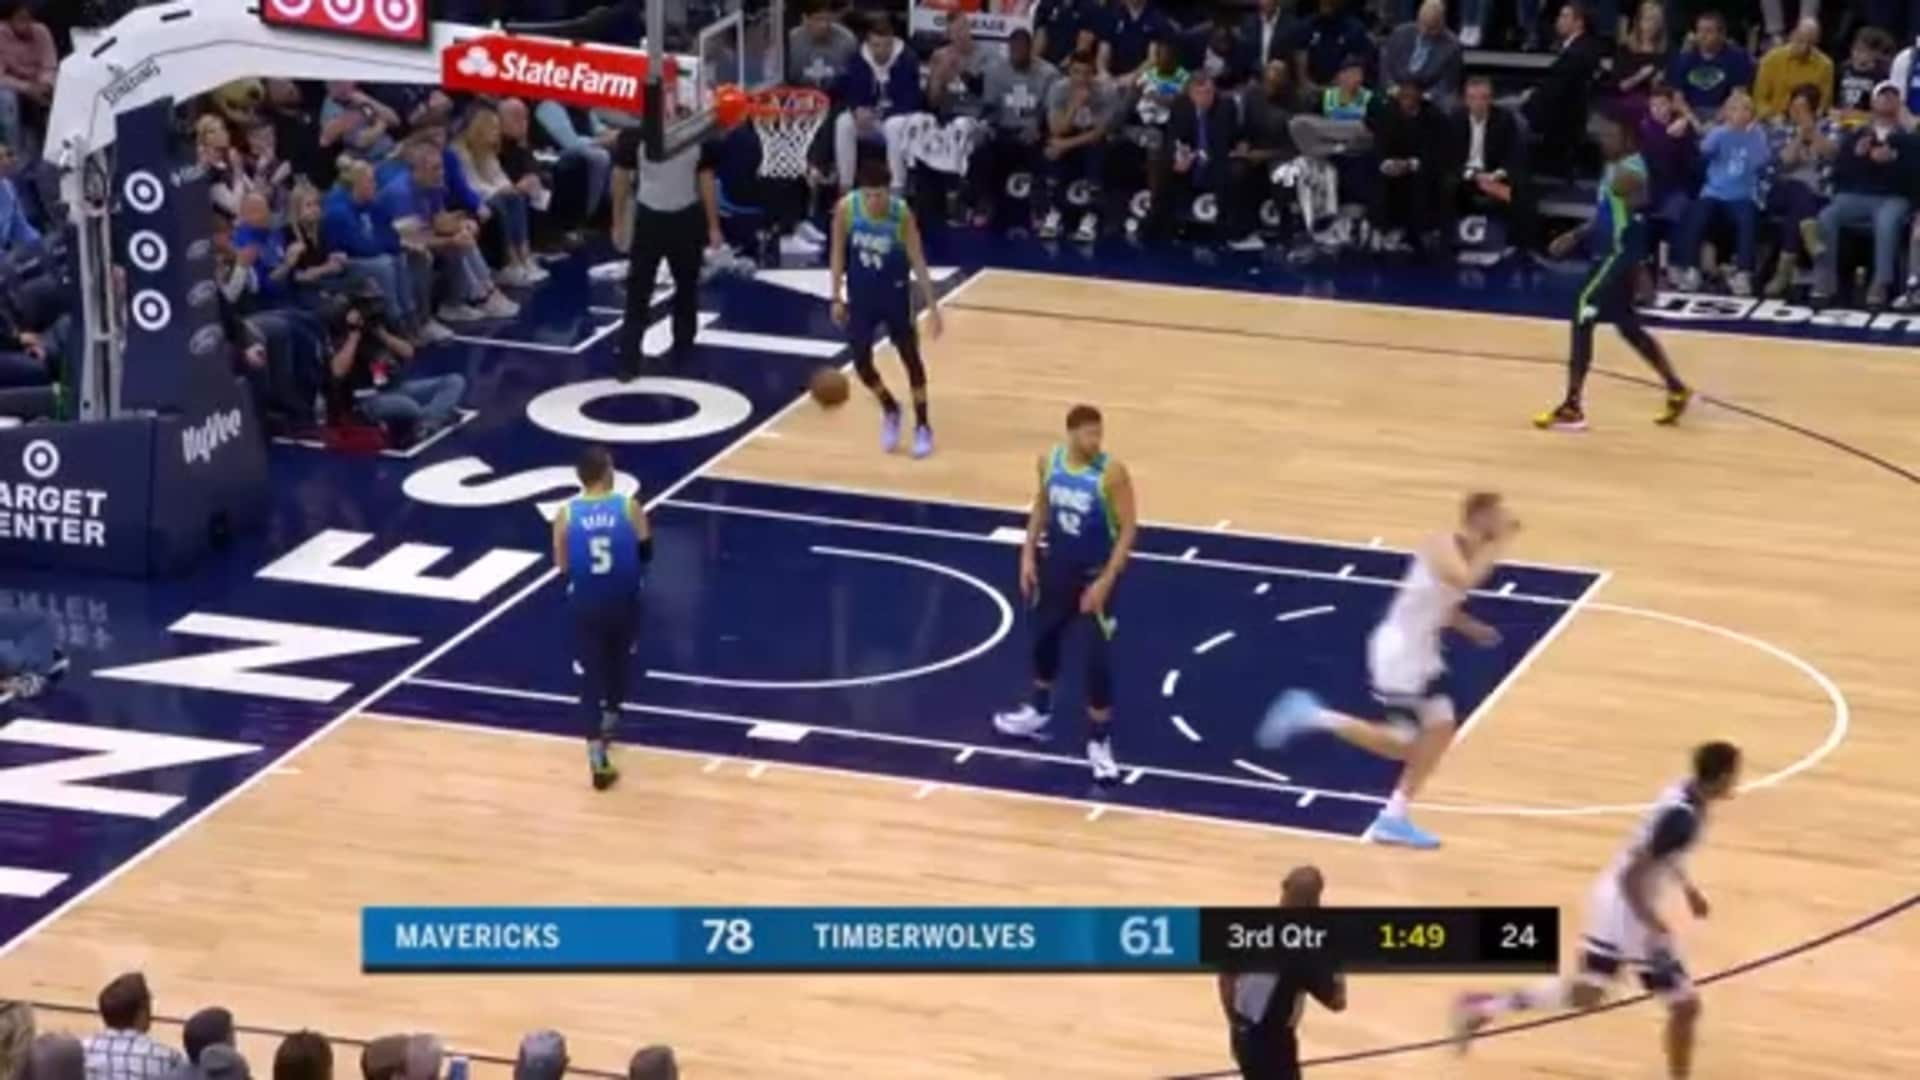 Highlights | Timberwolves 91, Mavericks 111 (3.1.20)